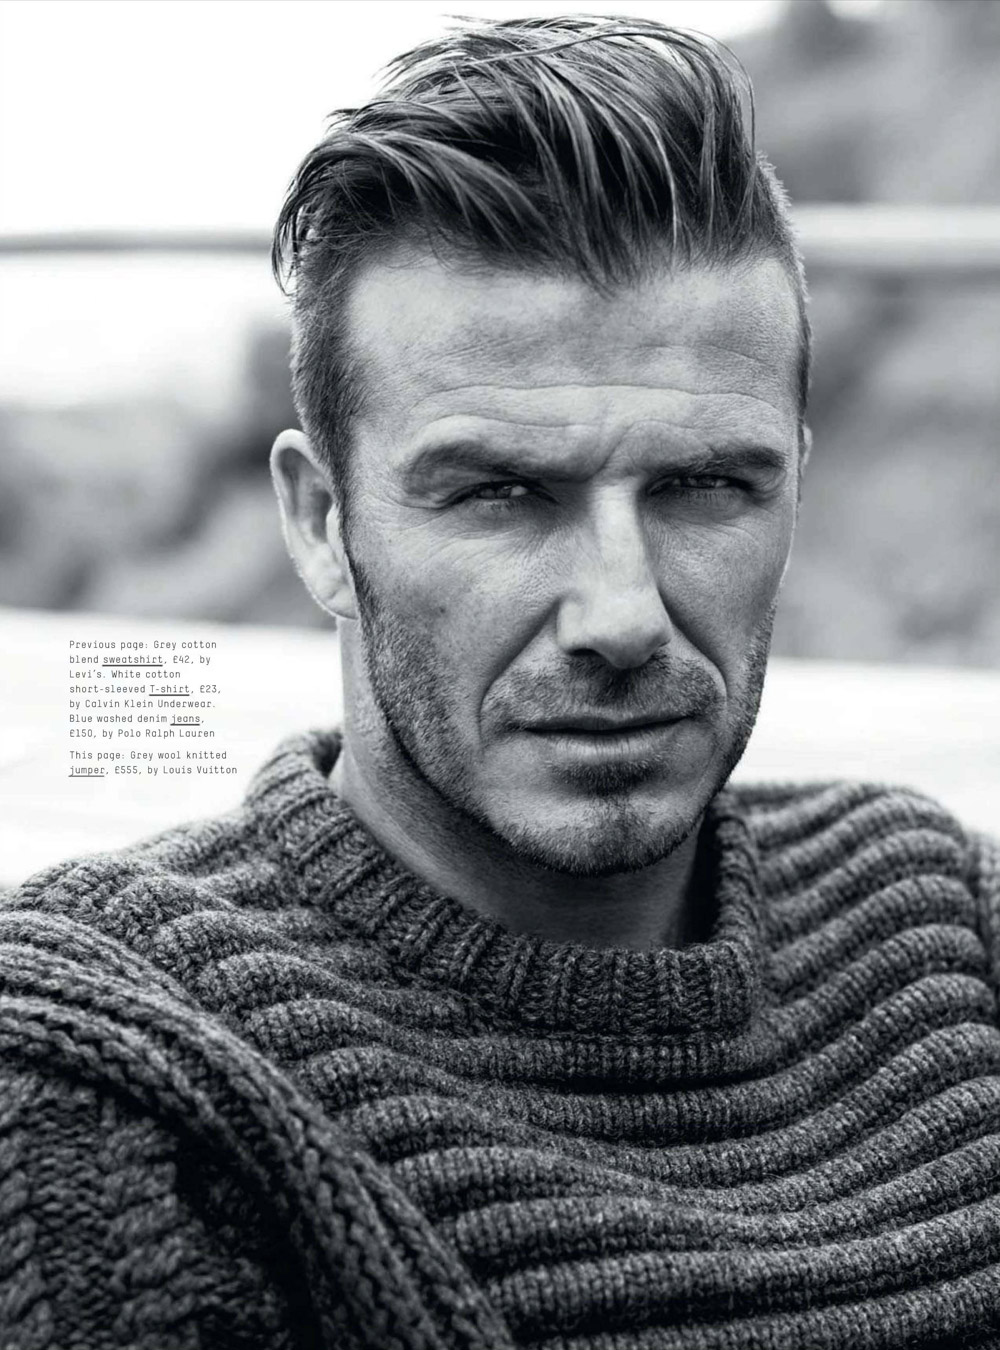 David beckham for esquire uk september 2012 un vaillant - David beckham ...